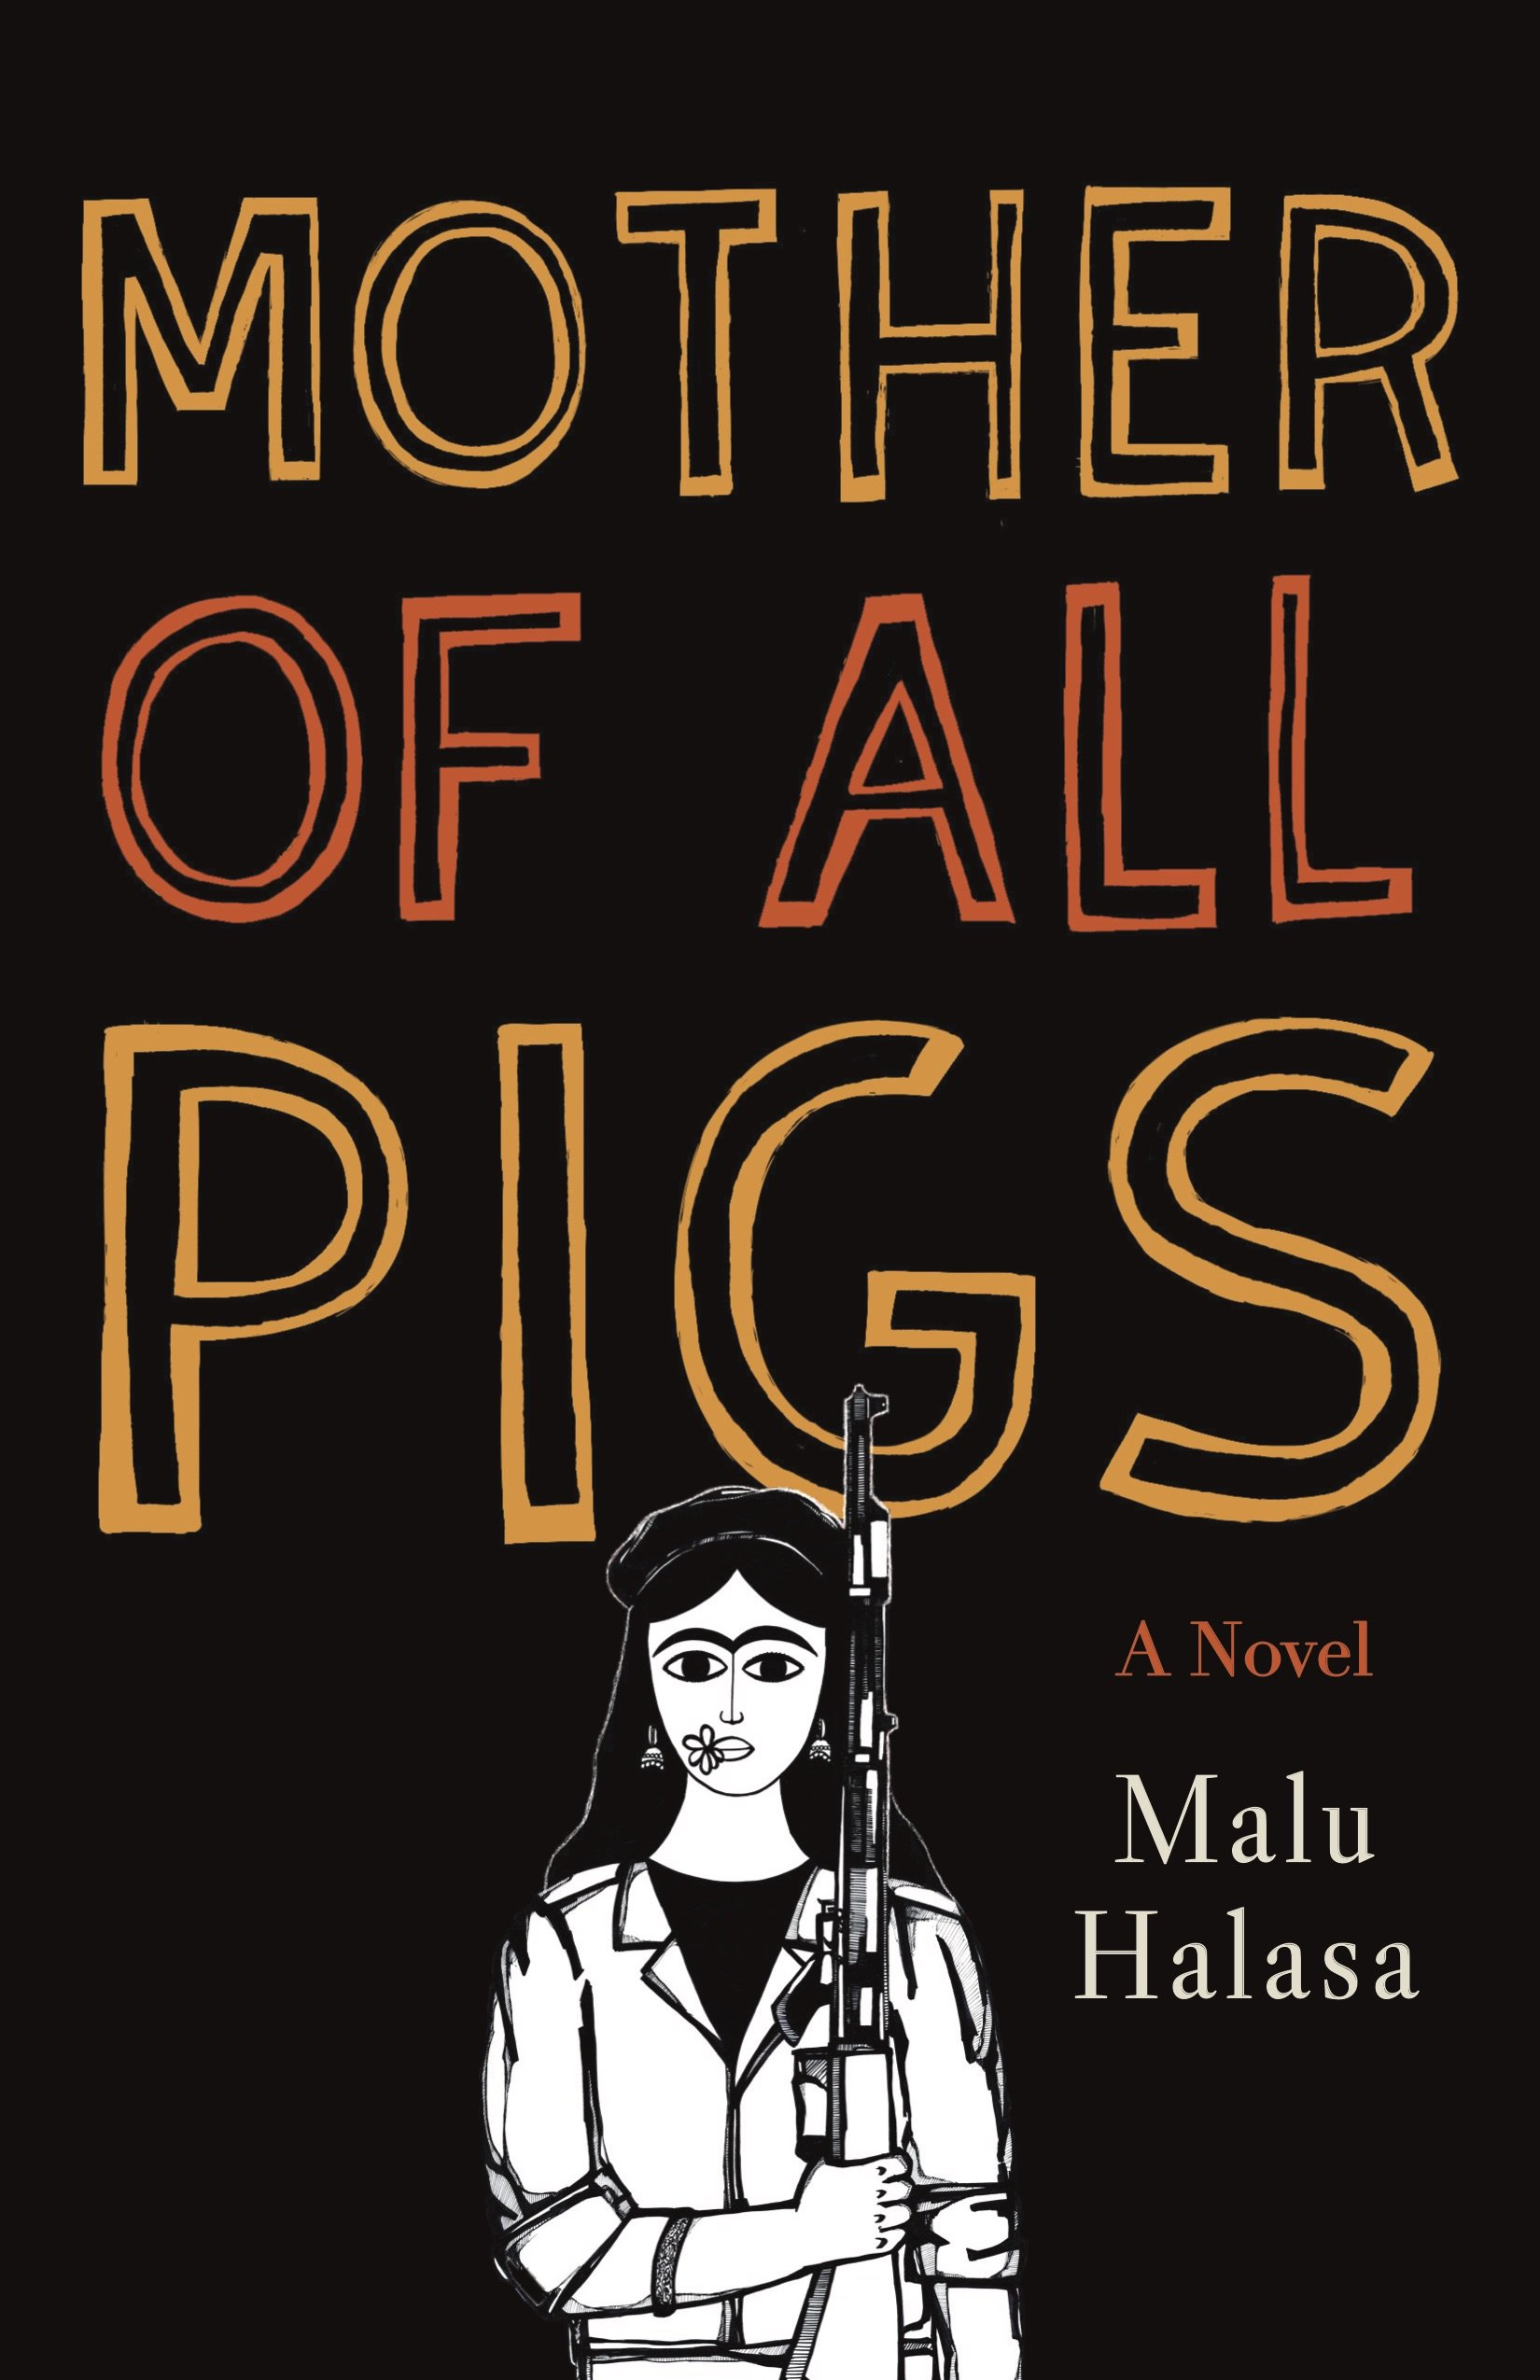 Mother of all pigs paperback november 14 2017